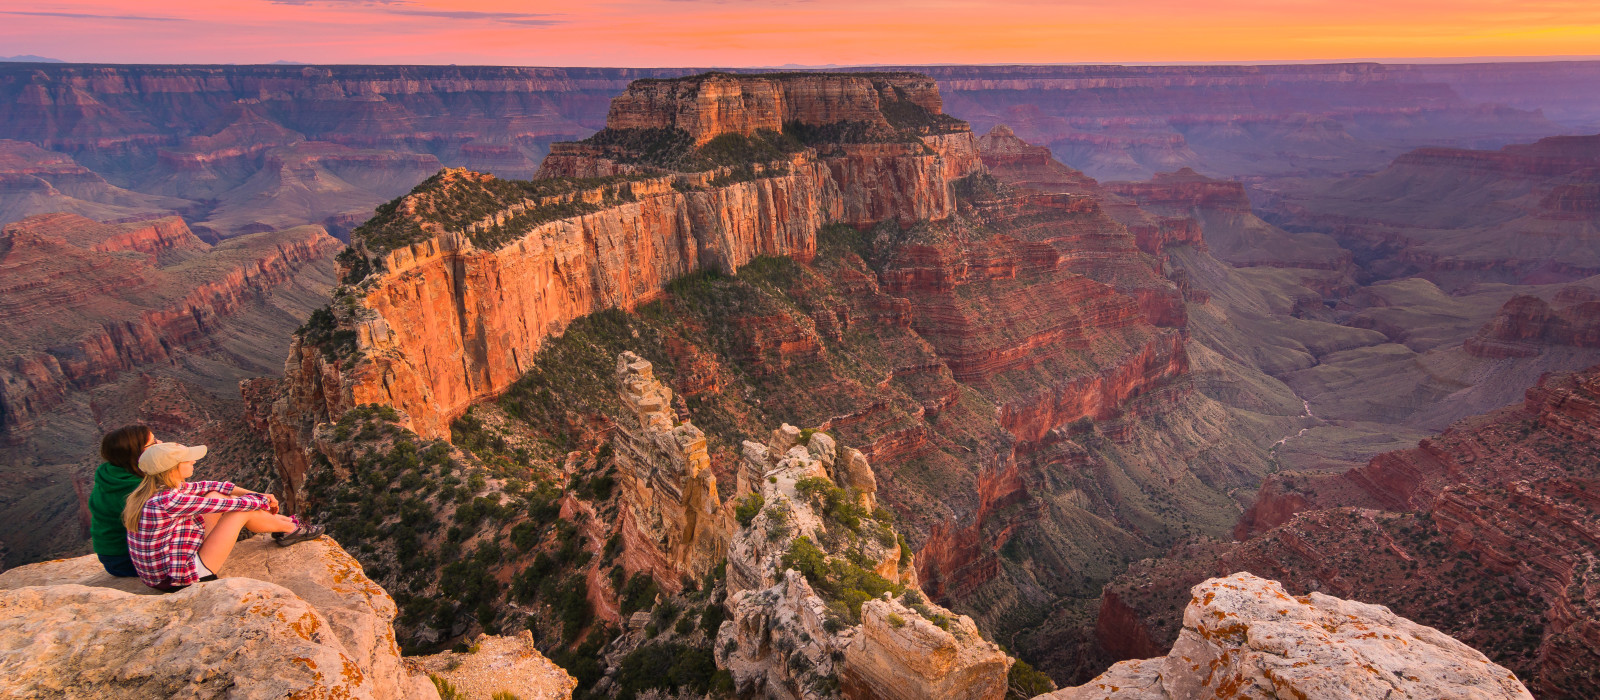 sunset at Grand Canyon National Park North Rim, USA